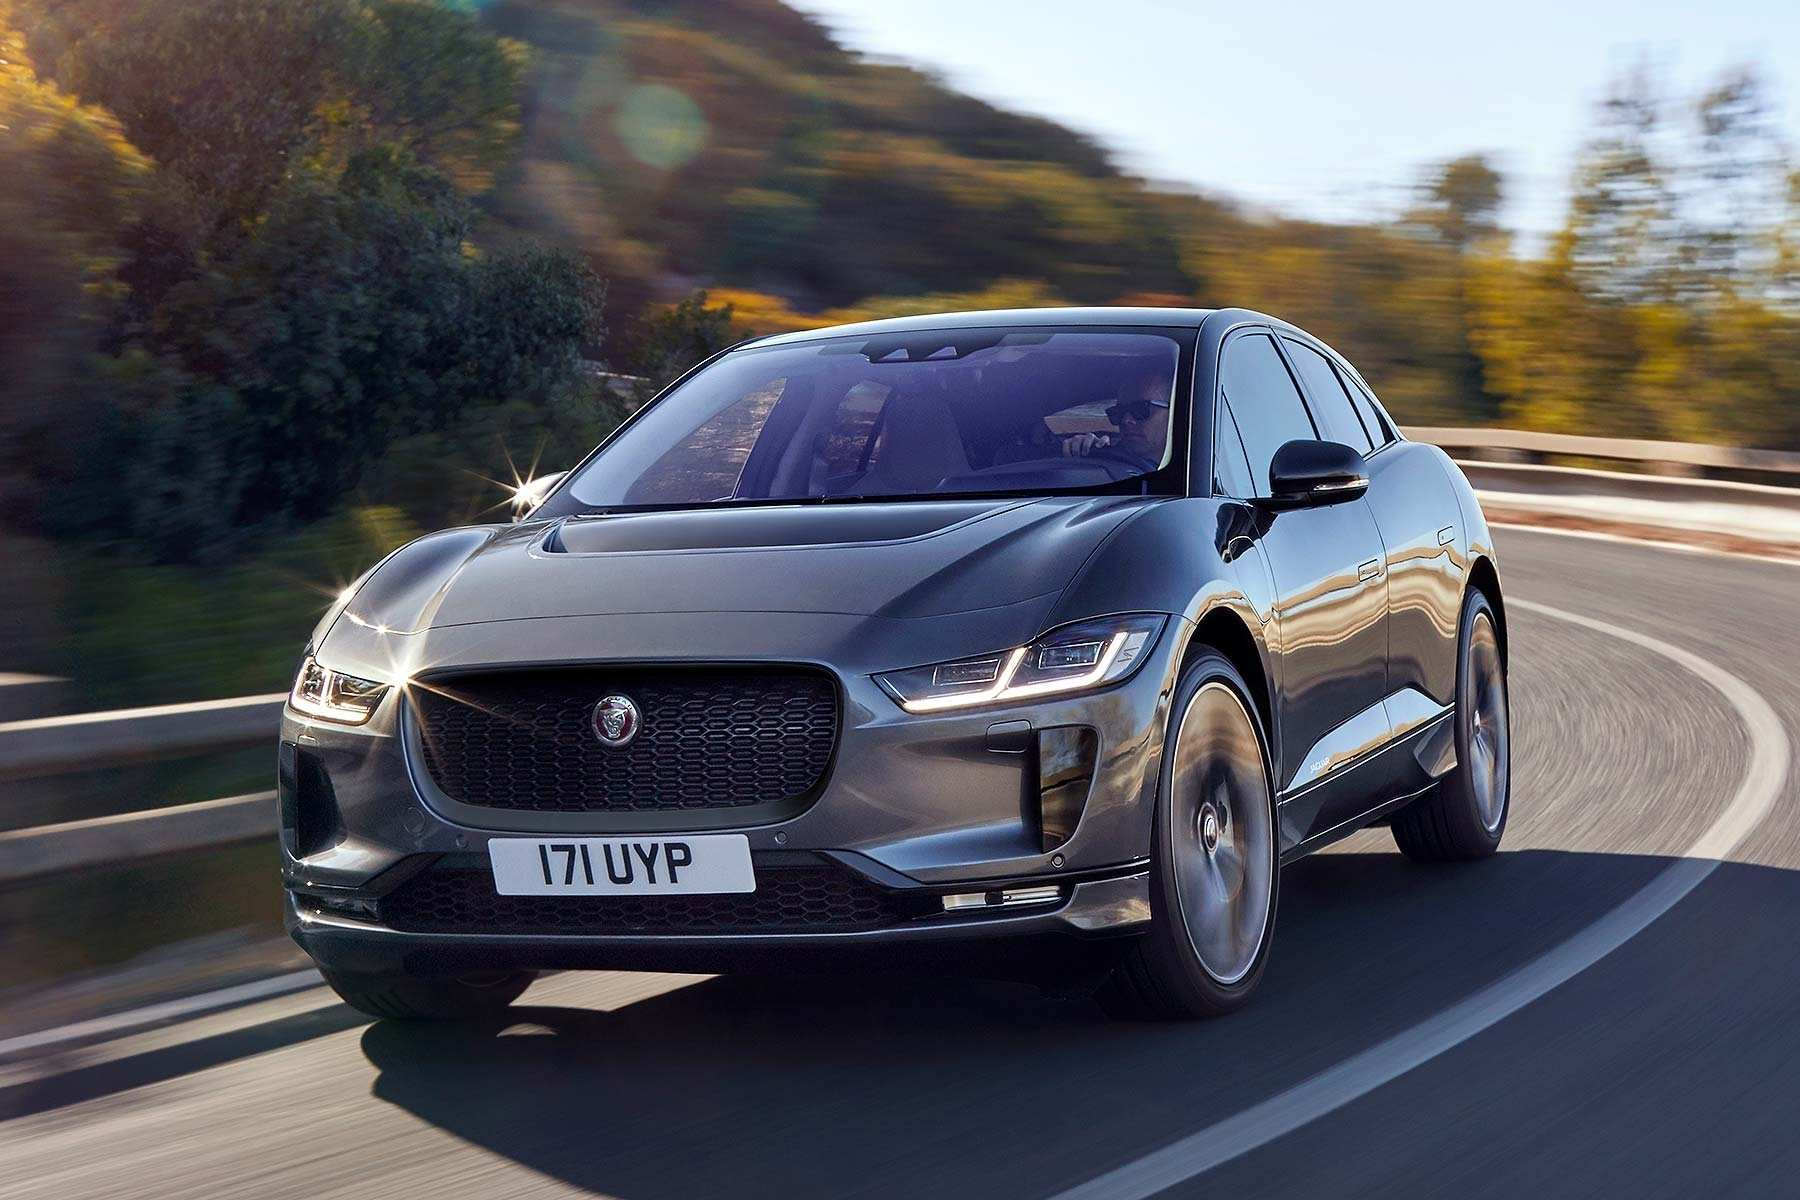 85 The Best 2019 Jaguar I Pace Release Date Ratings